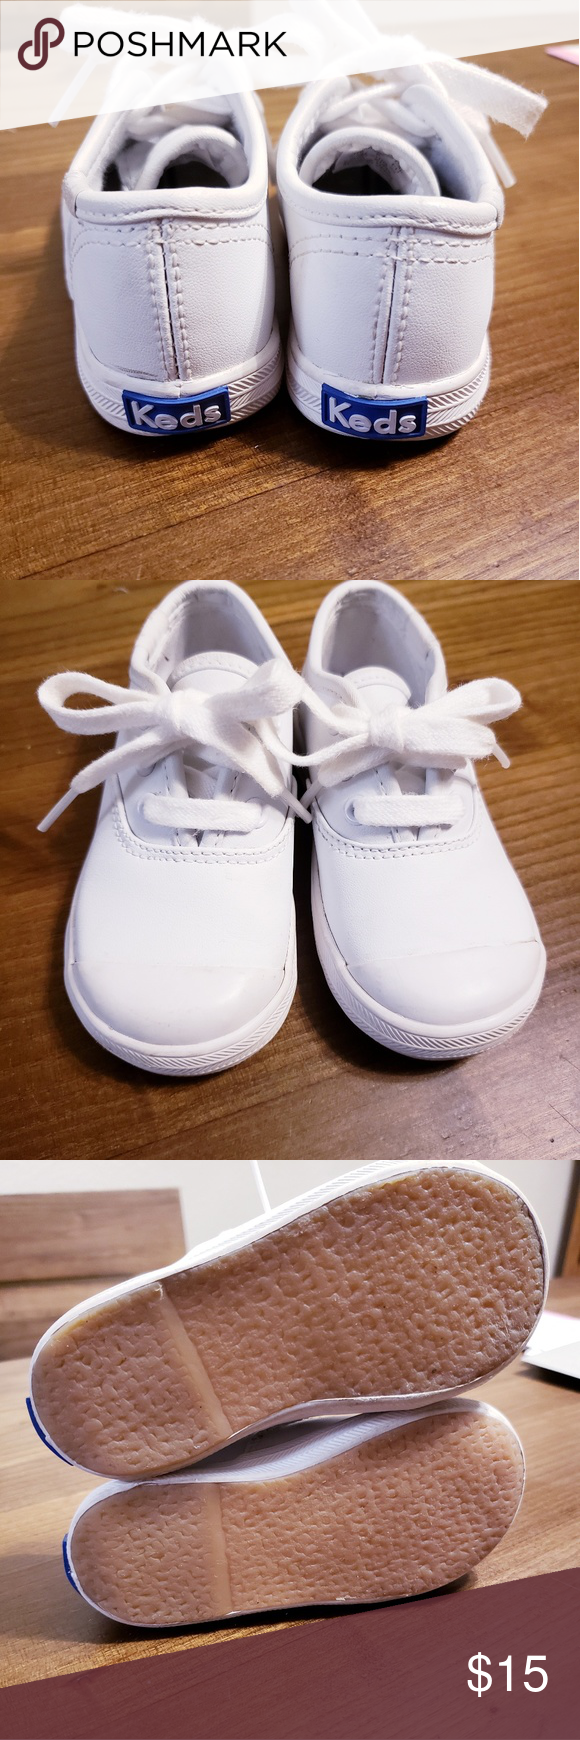 581be7e37caa0a I just added this listing on Poshmark  Keds toddler champion toe sneaker.   shopmycloset  poshmark  fashion  shopping  style  forsale  Keds  Other